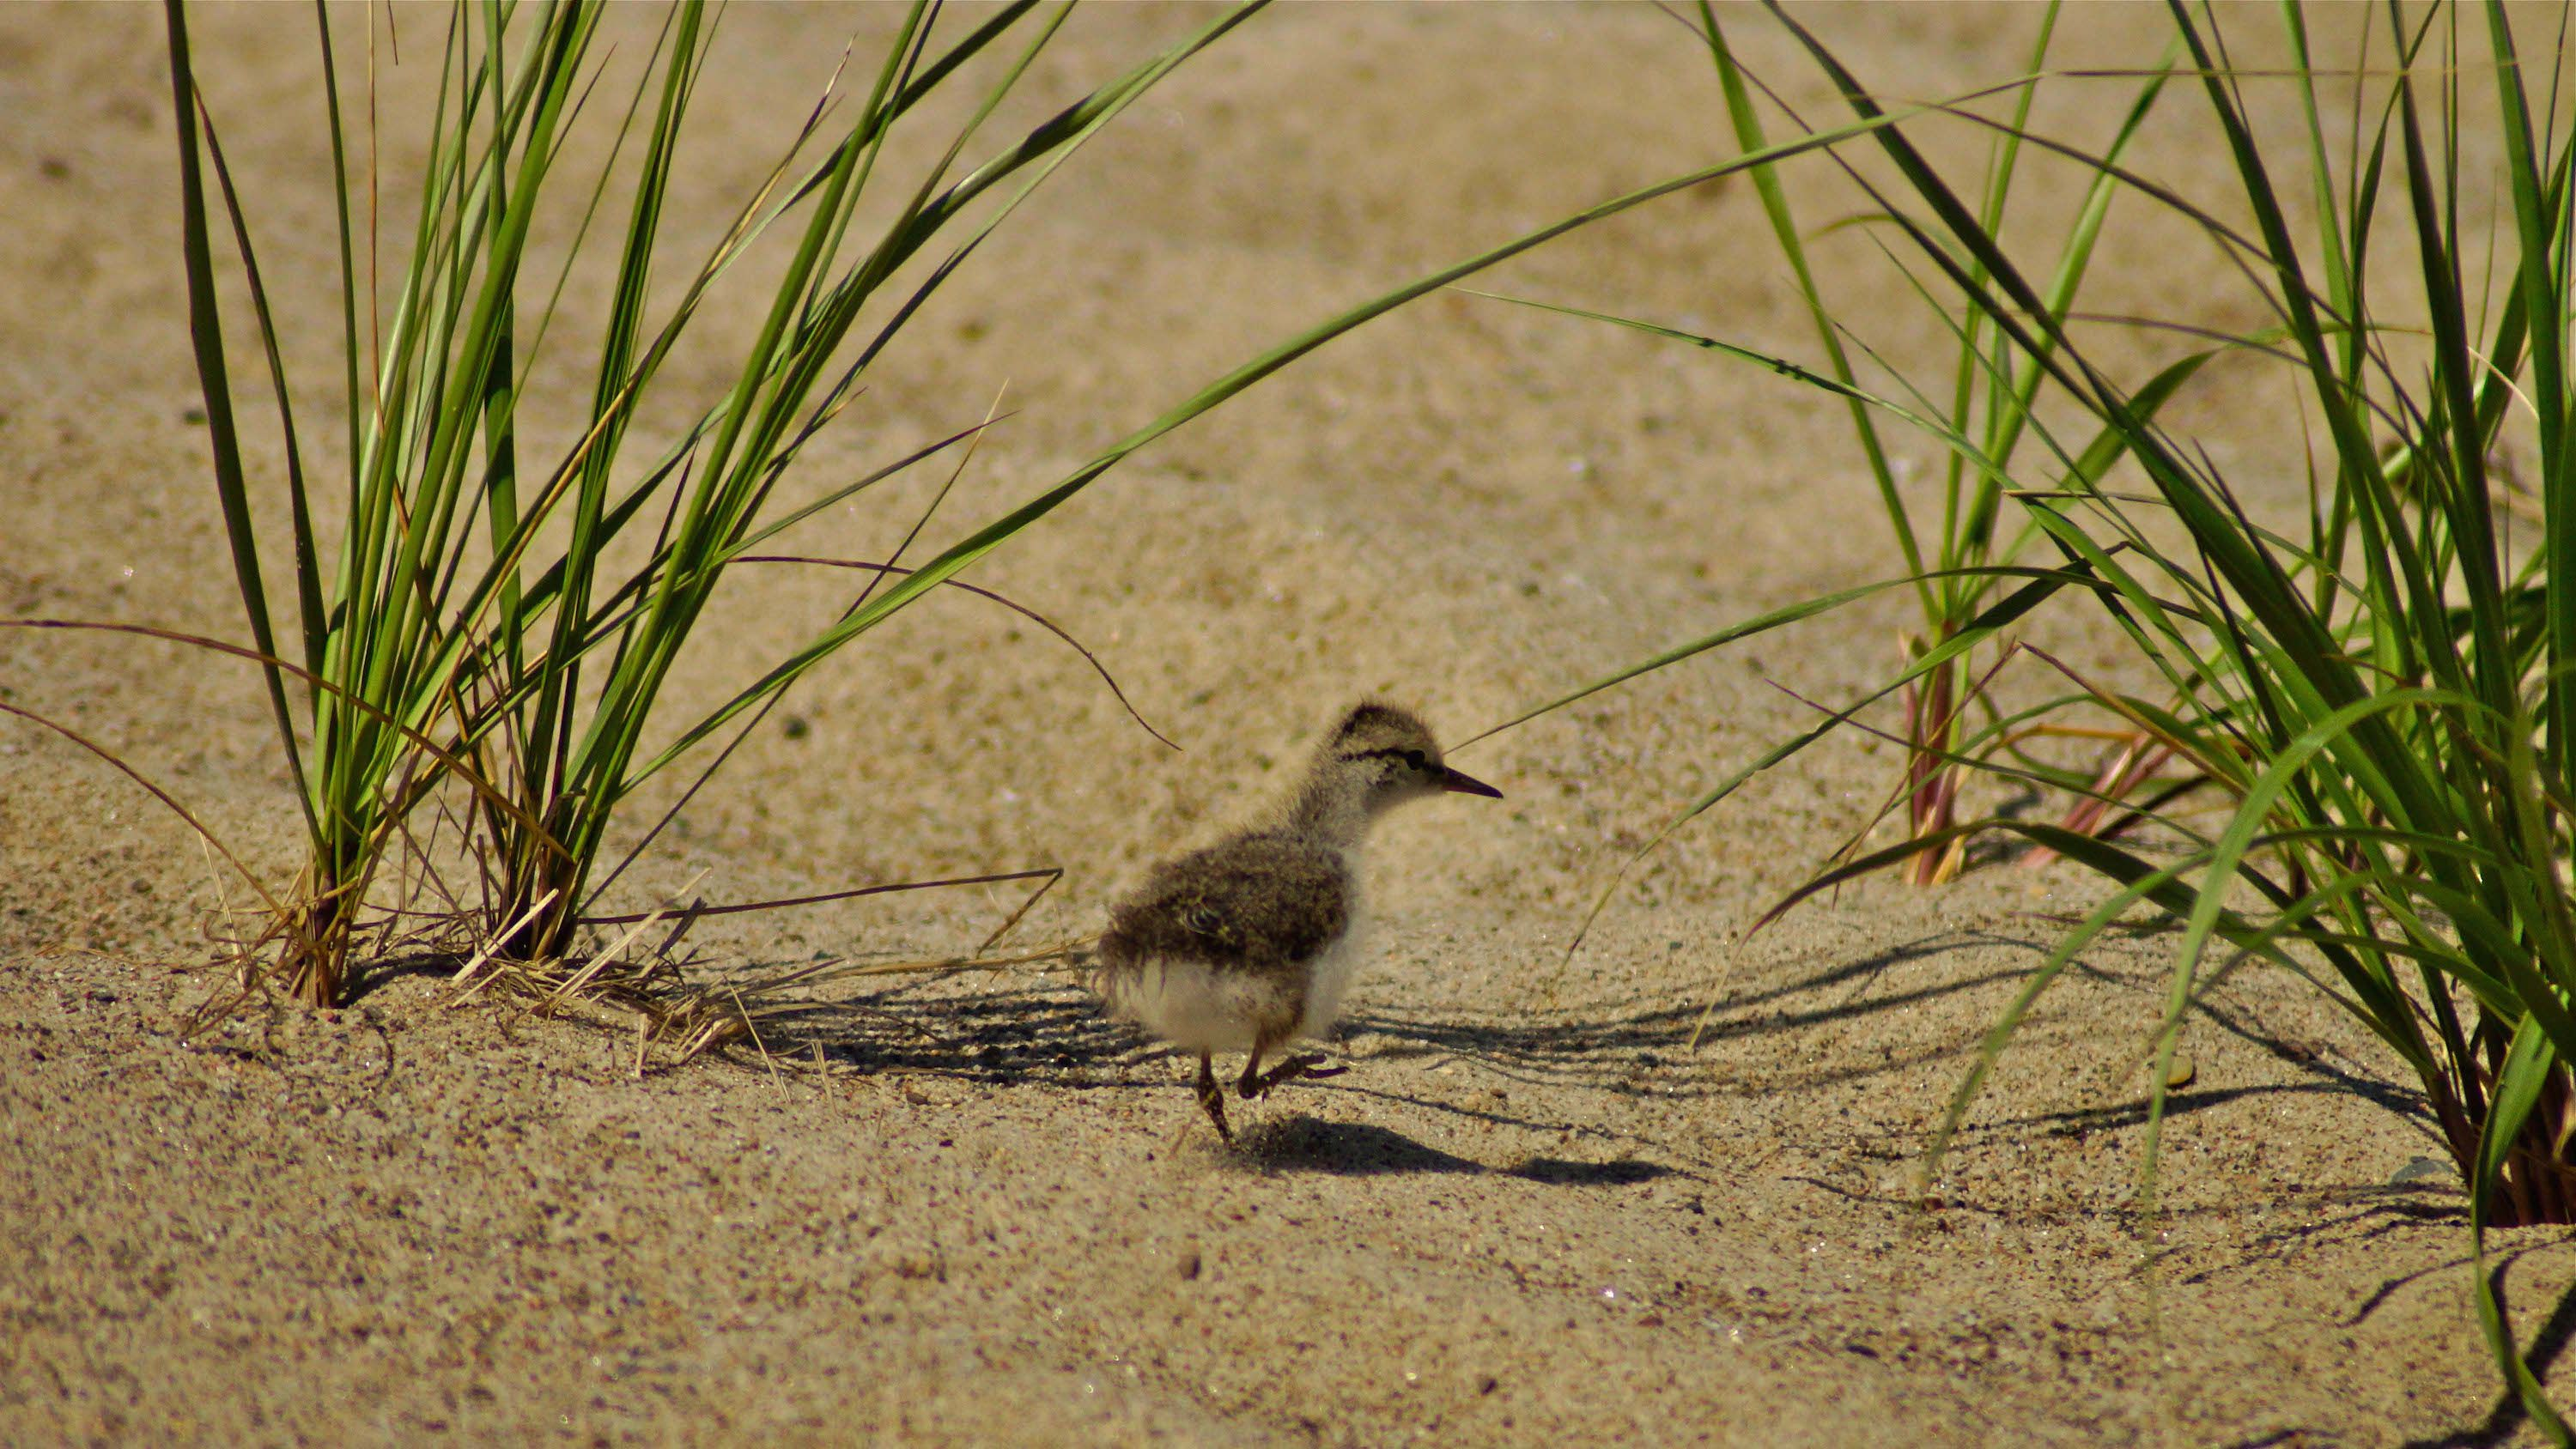 young shore bird on the beach in Louisbourg, Nova Scotia, Canada